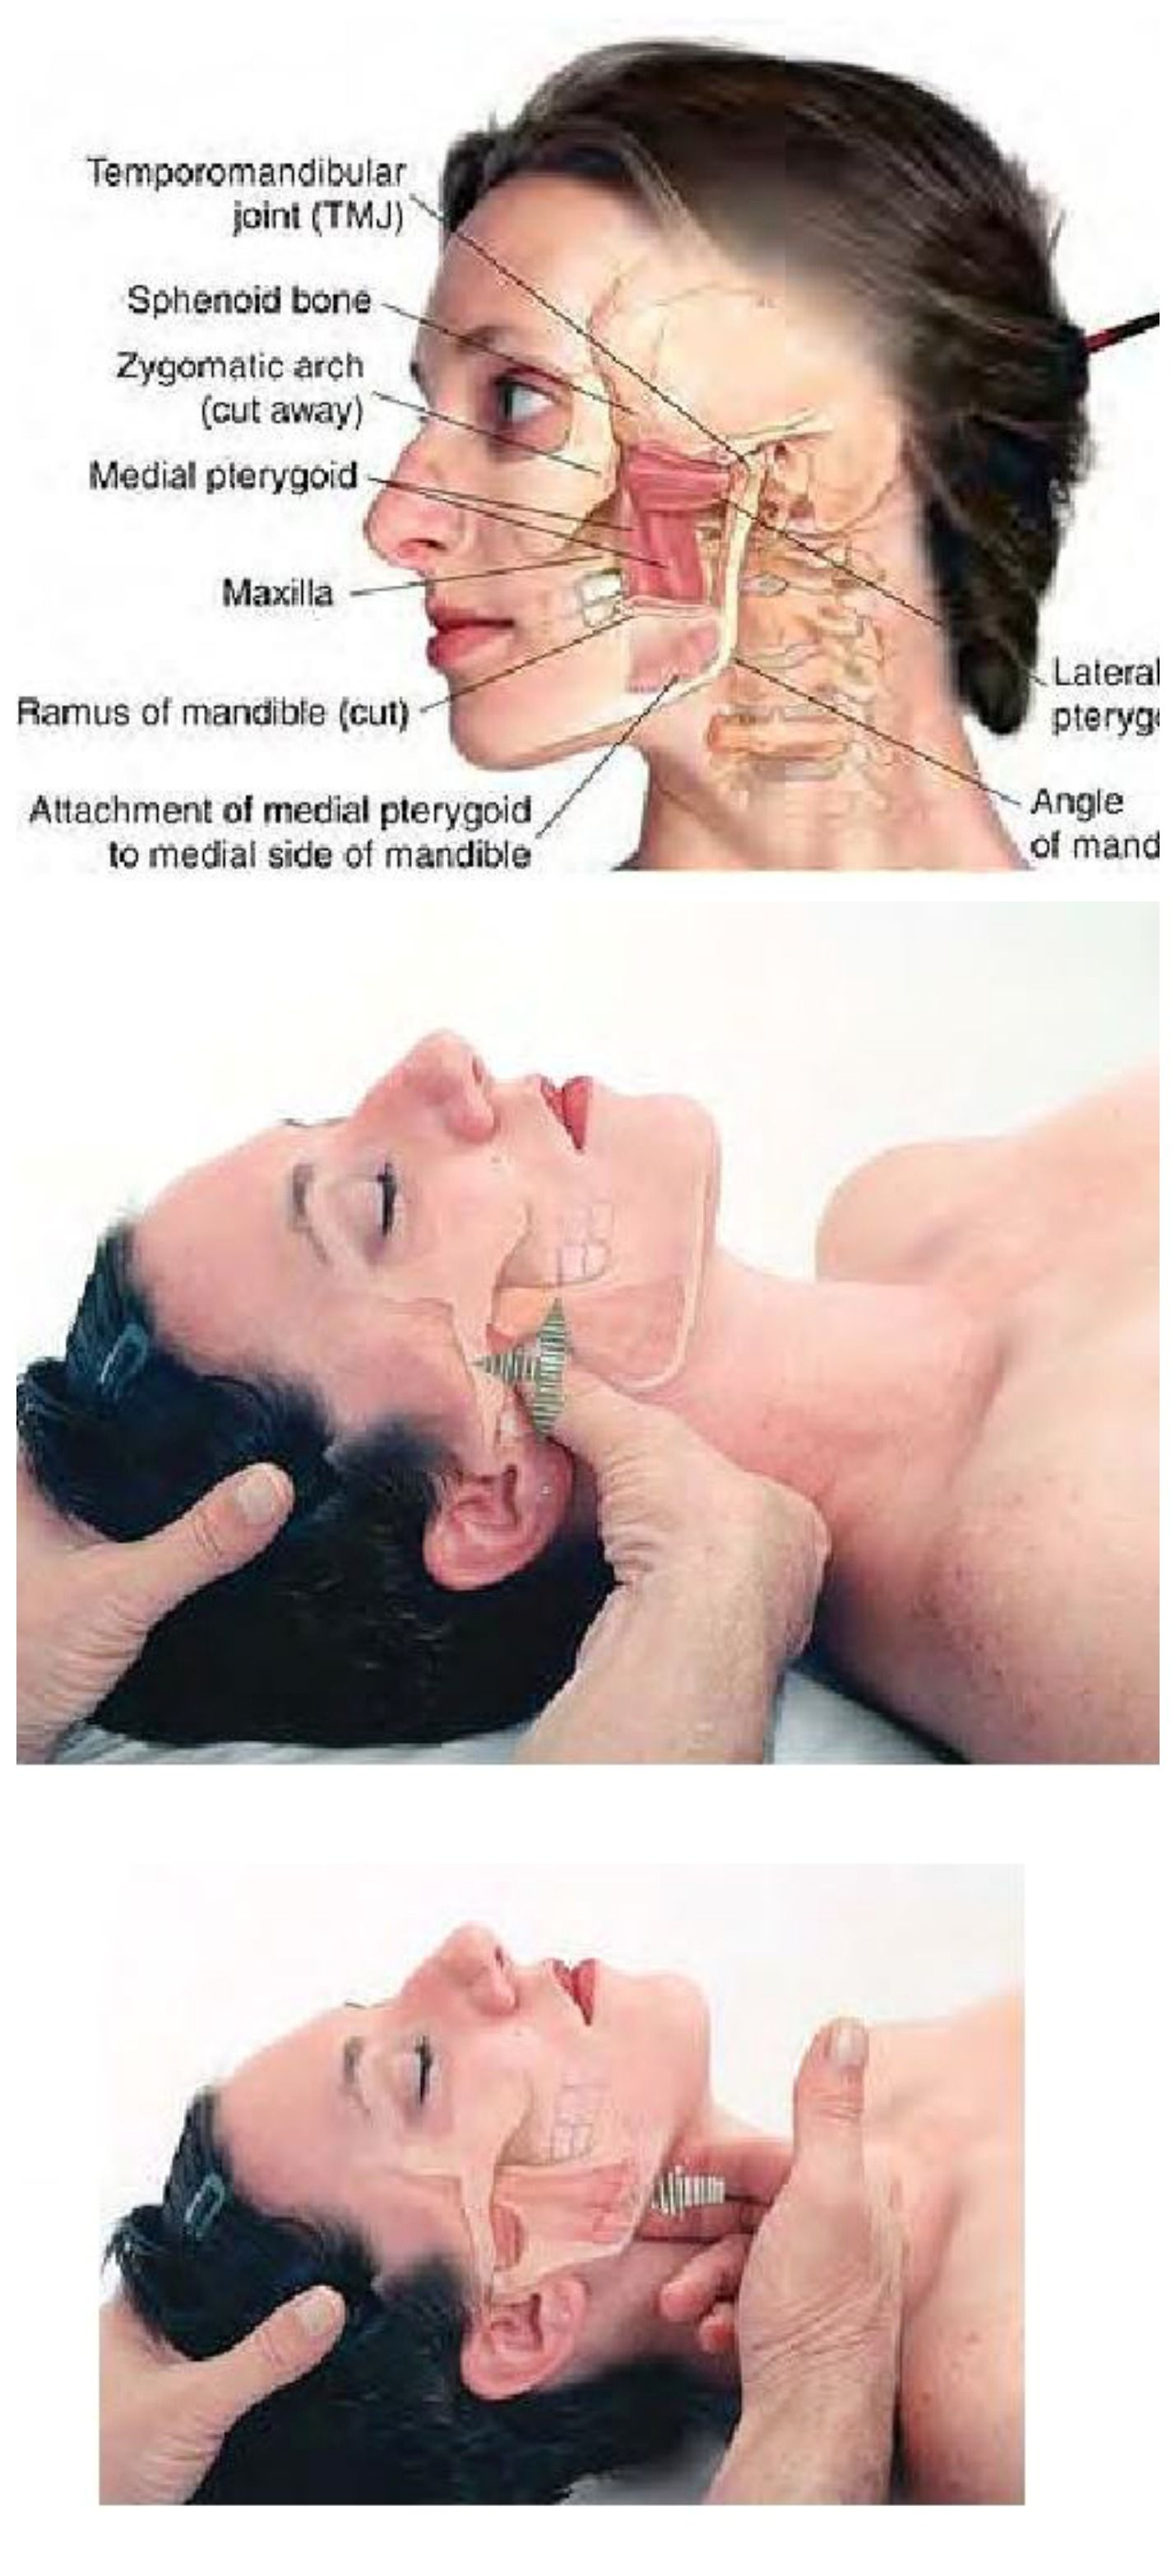 Facial massage and tmj and